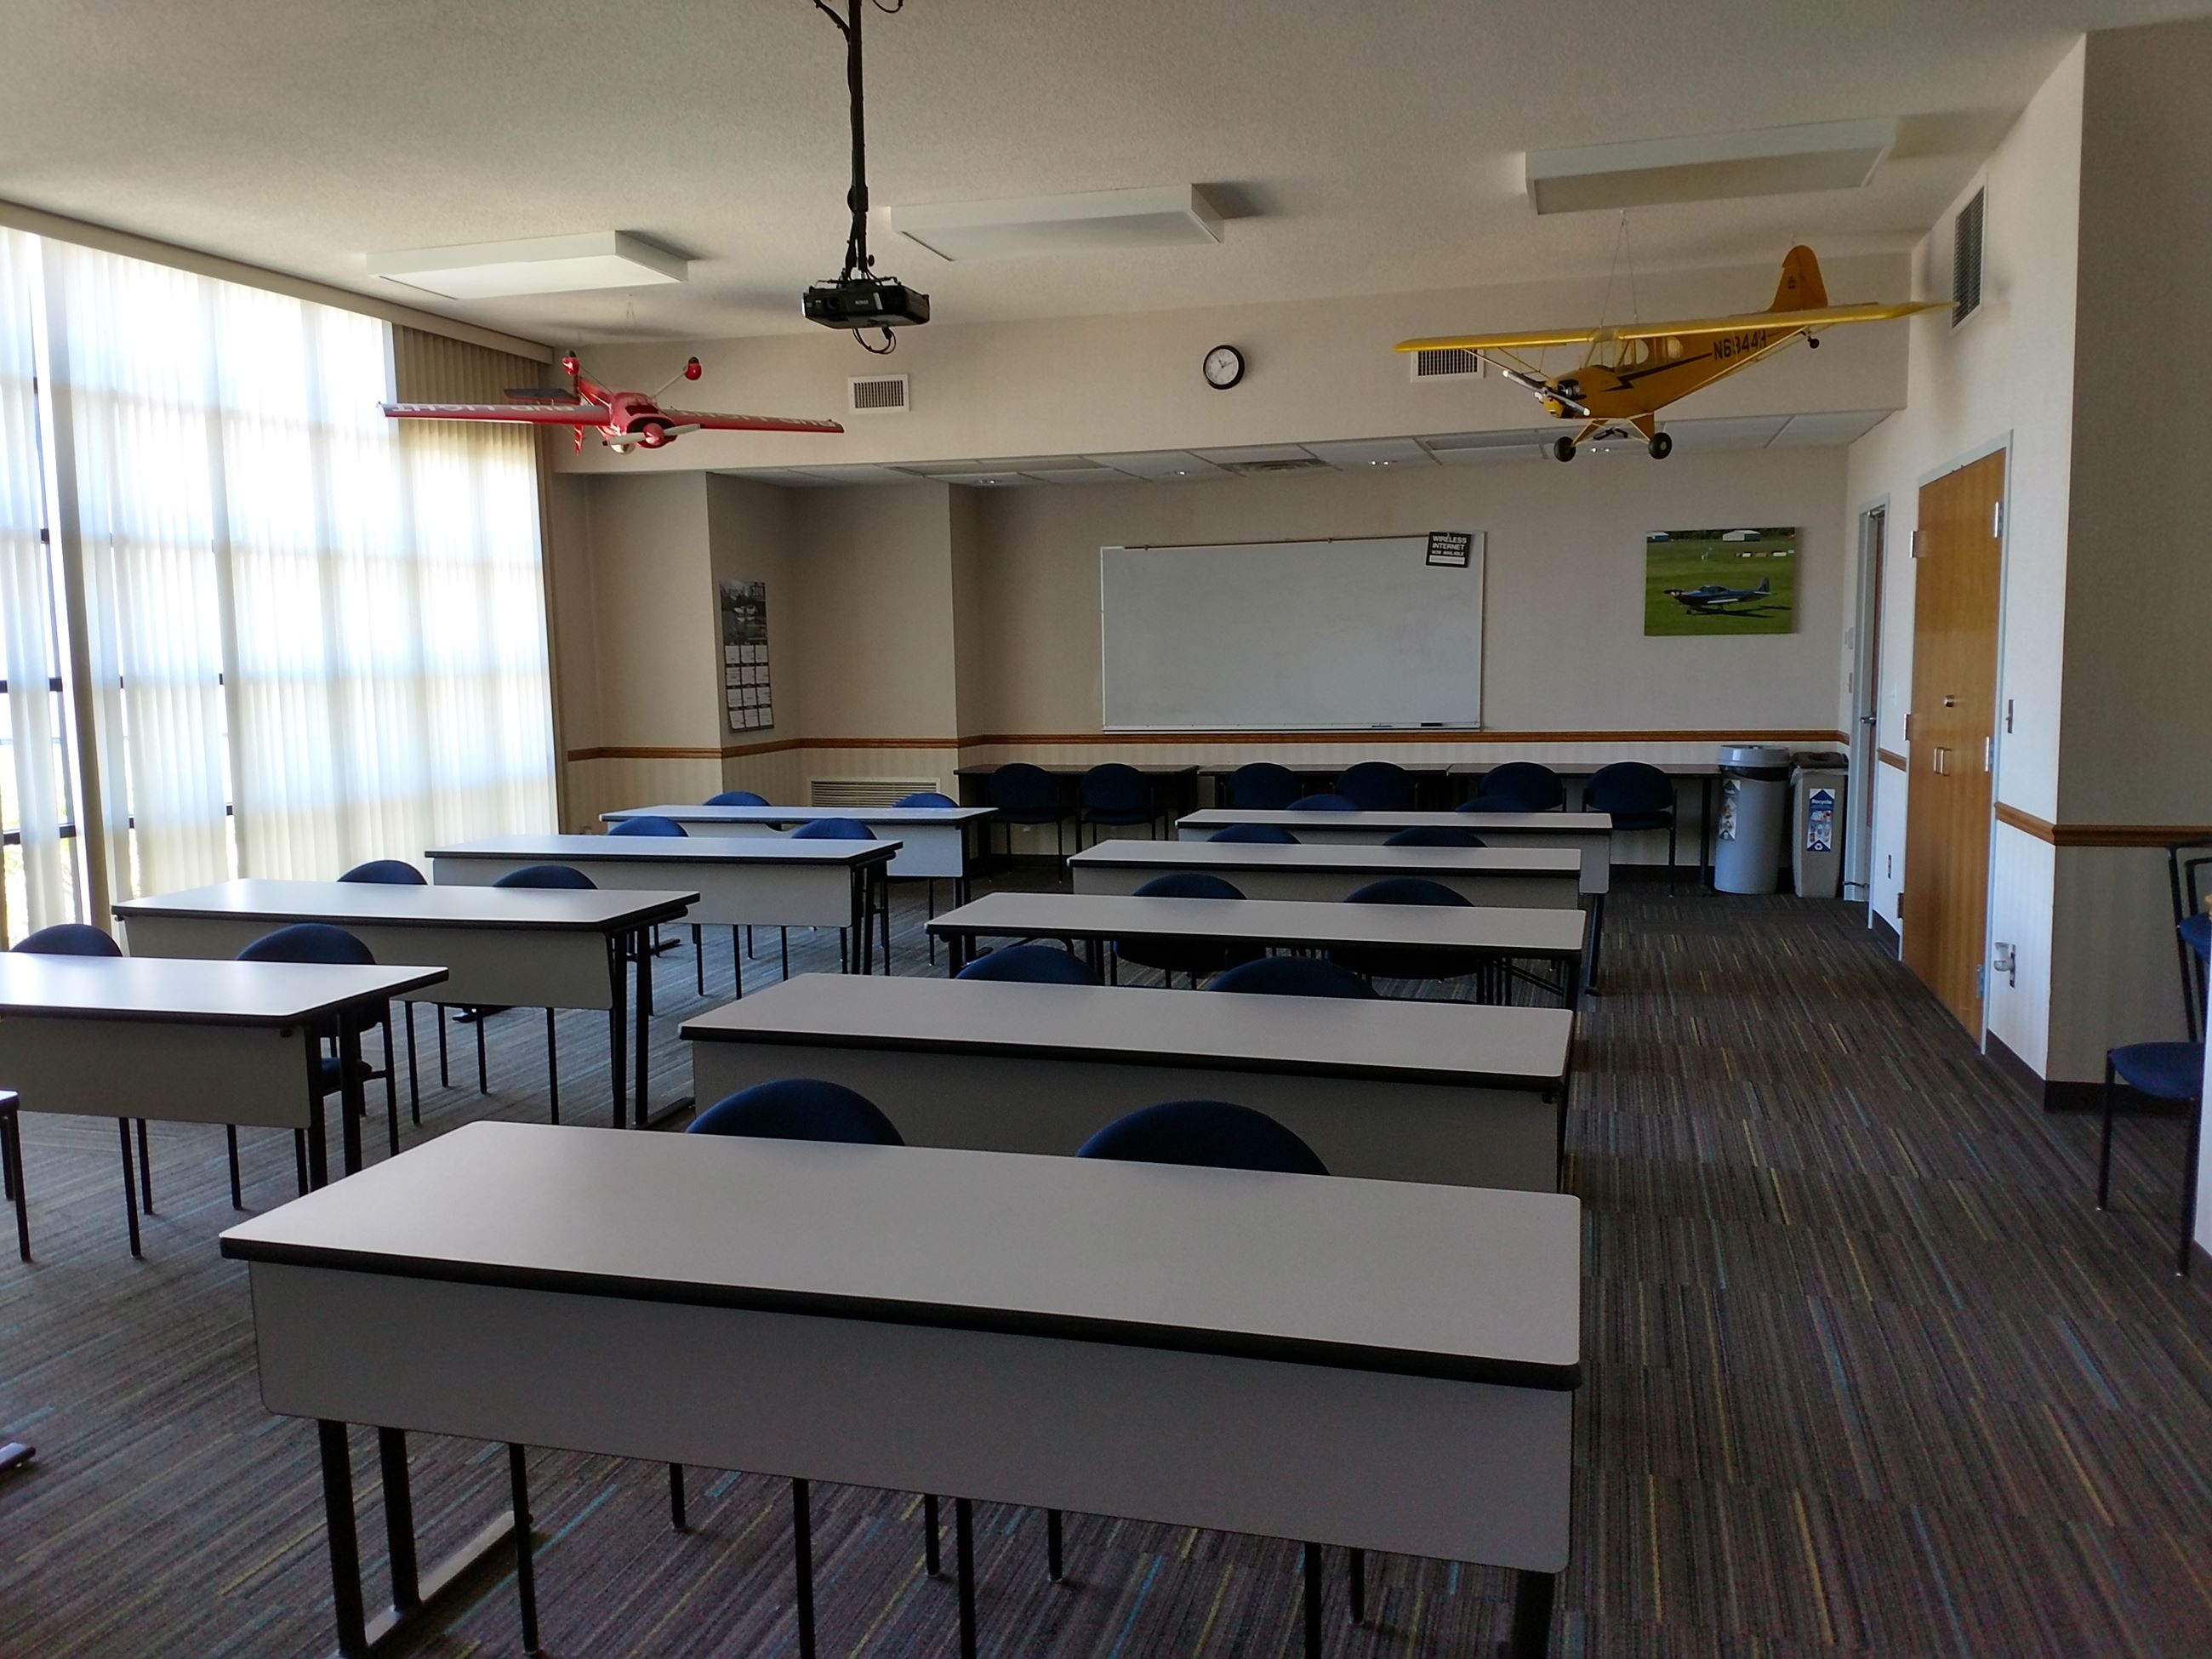 Viewing the front of the classroom, showing the podium and the screen